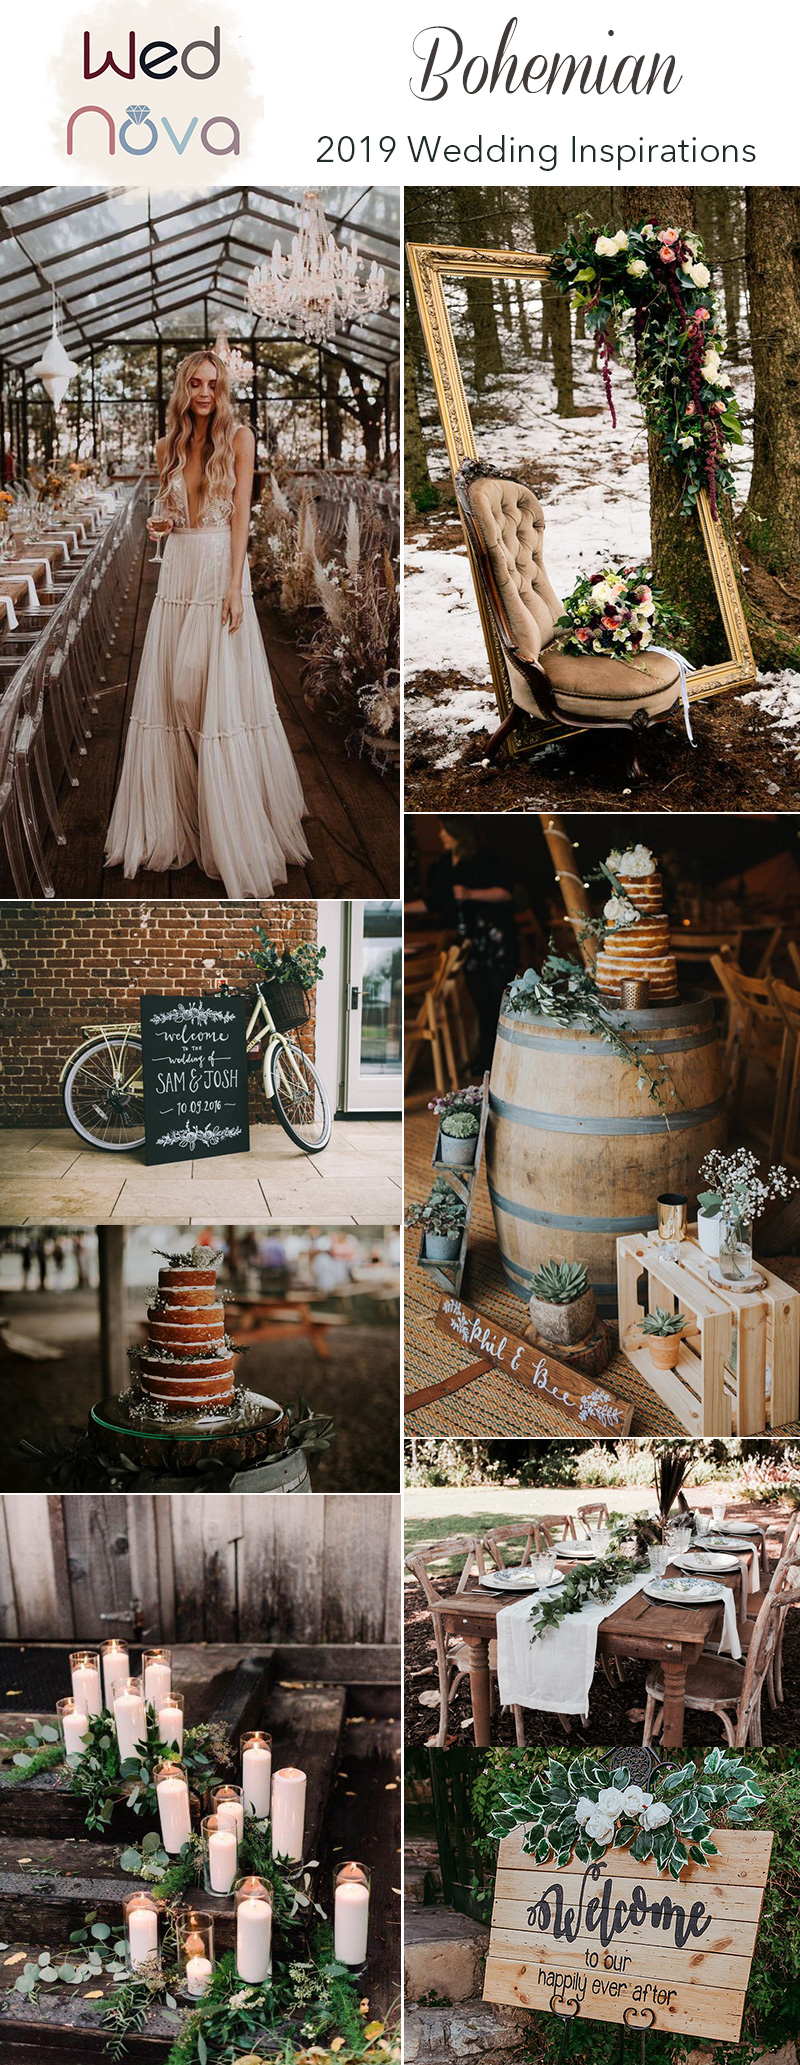 Top 15 Chic Boho Wedding Ideas Inspired Your Wedding Wednova Blog